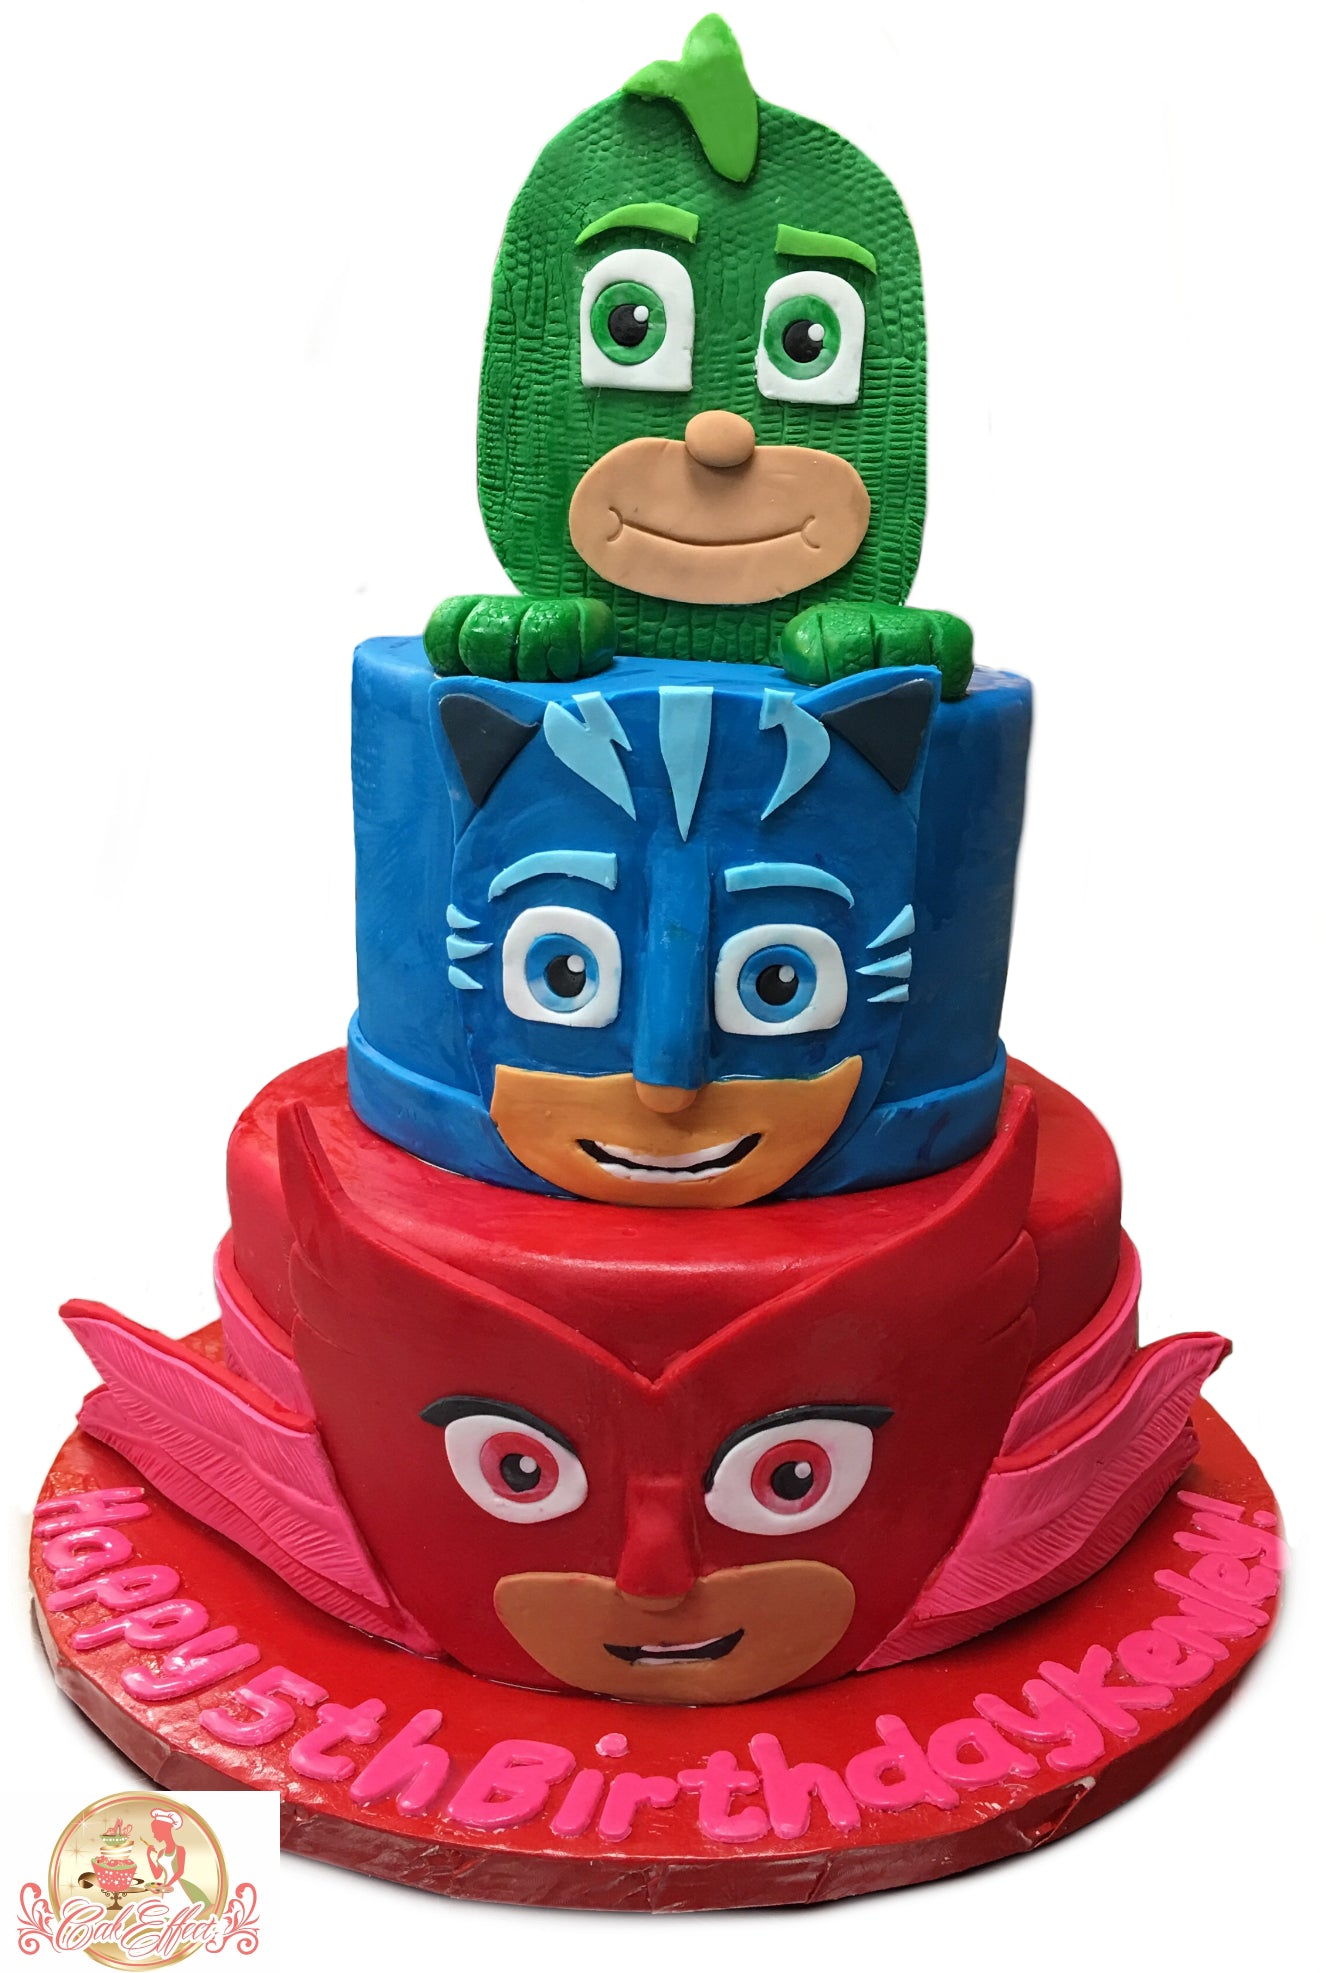 Birthday Cake Green, Red, & Blue Power Rangers - CakEffect Bakery